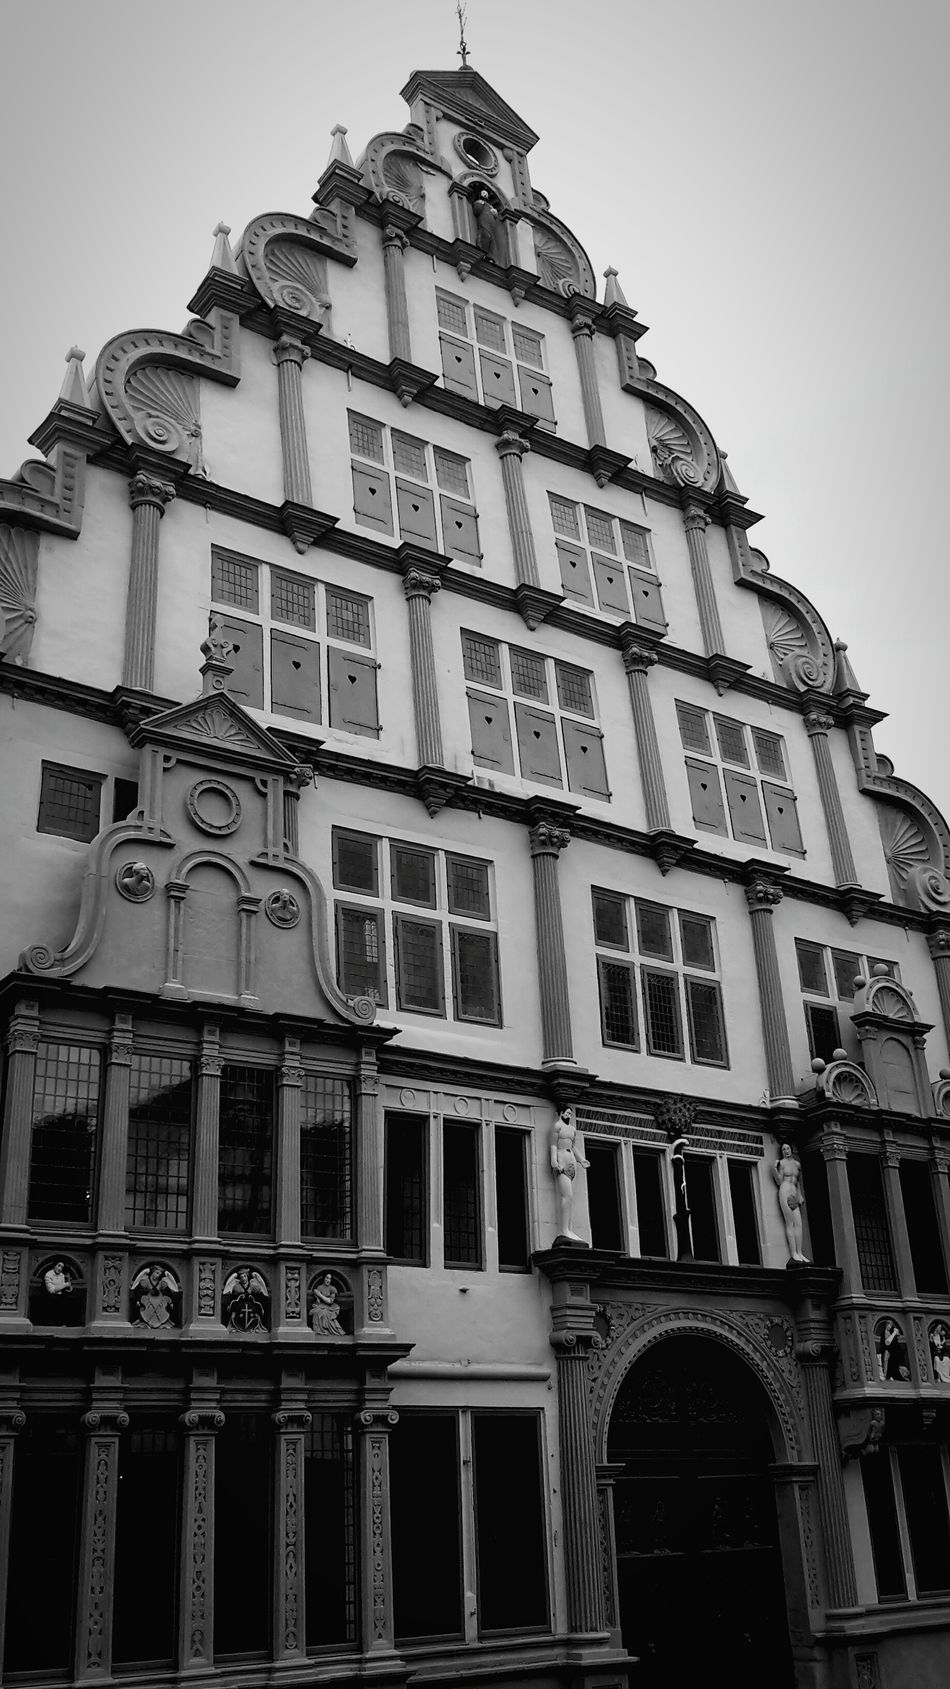 Architecture Travel Destinations History Building Exterior Travel Built Structure City House Low Angle View No People Outdoors Vacations Sky Day Lemgo Hexenbürgermeisterhaus